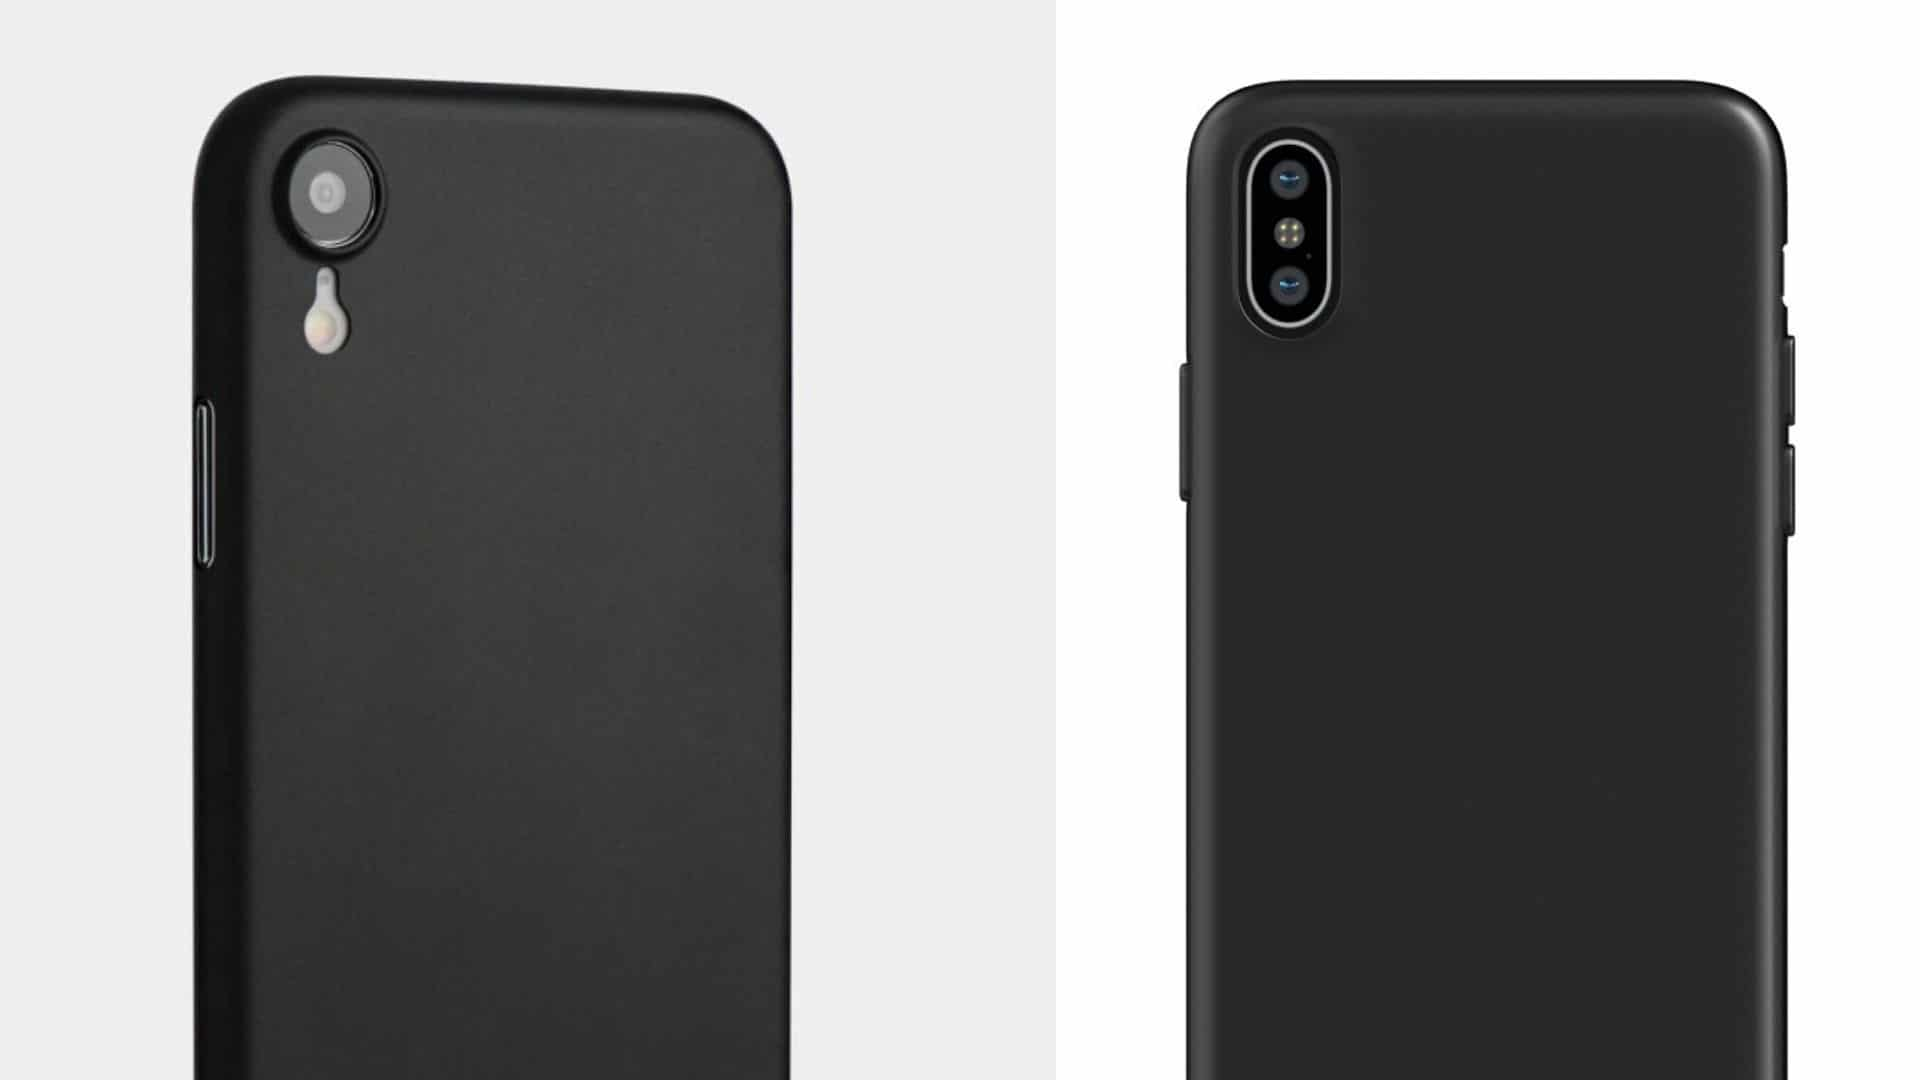 will iPhone x case fit iPhone XR